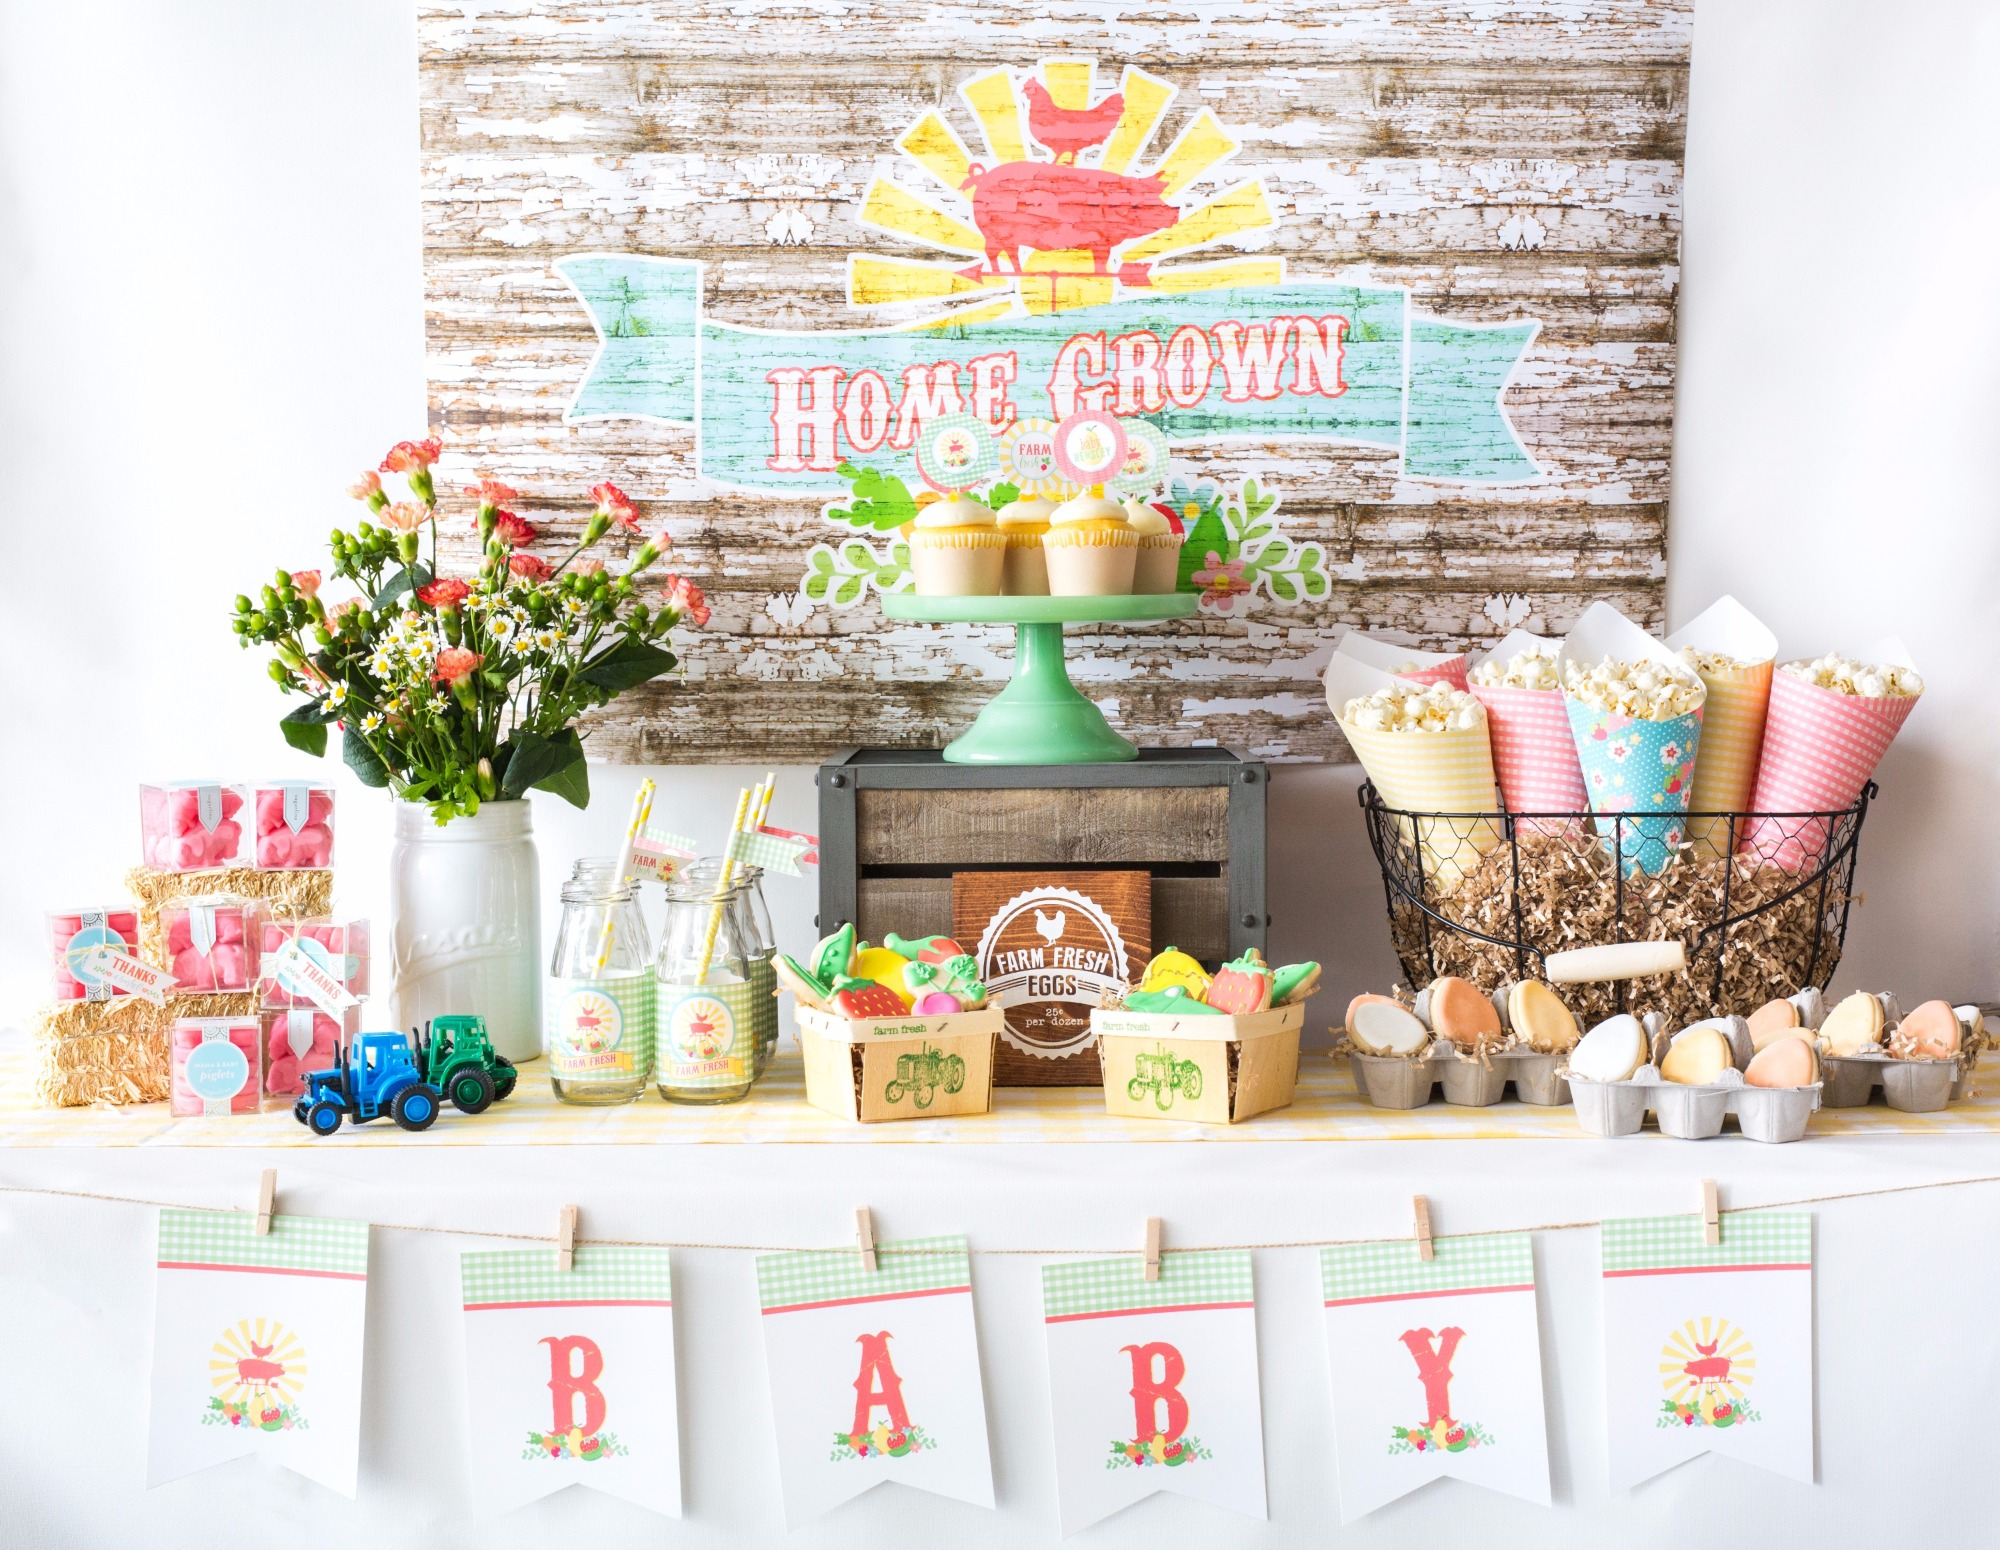 Home Grown backdrop & Dessert Table from Farm Fresh Baby Shower Styled by Black Twine